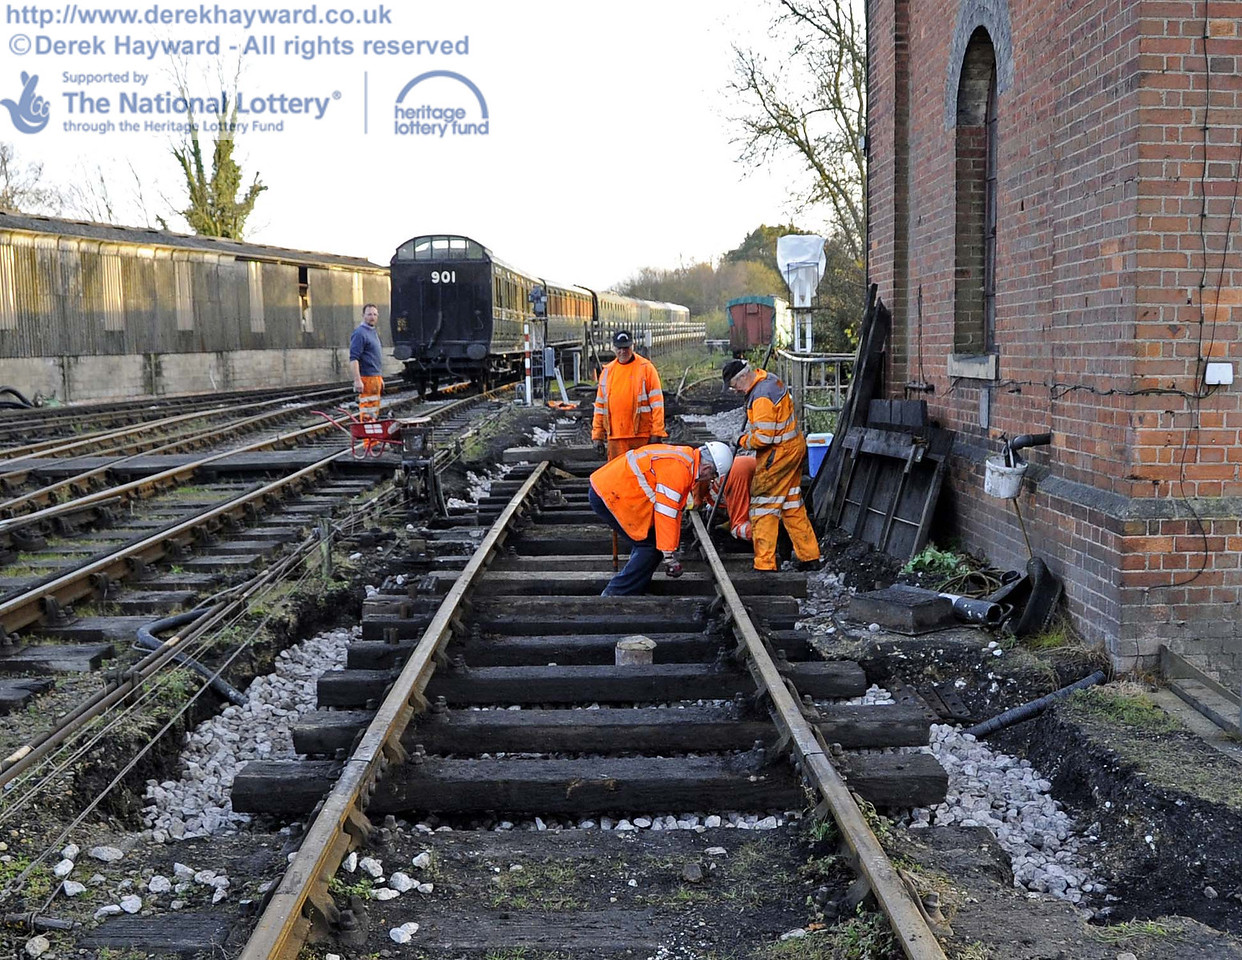 The old wash out pit has been filled in, and some new track panels were being laid to replace life expired items.  A new point is also to be installed to slightly lengthen the sleeping car siding. 24.11.2011  3161